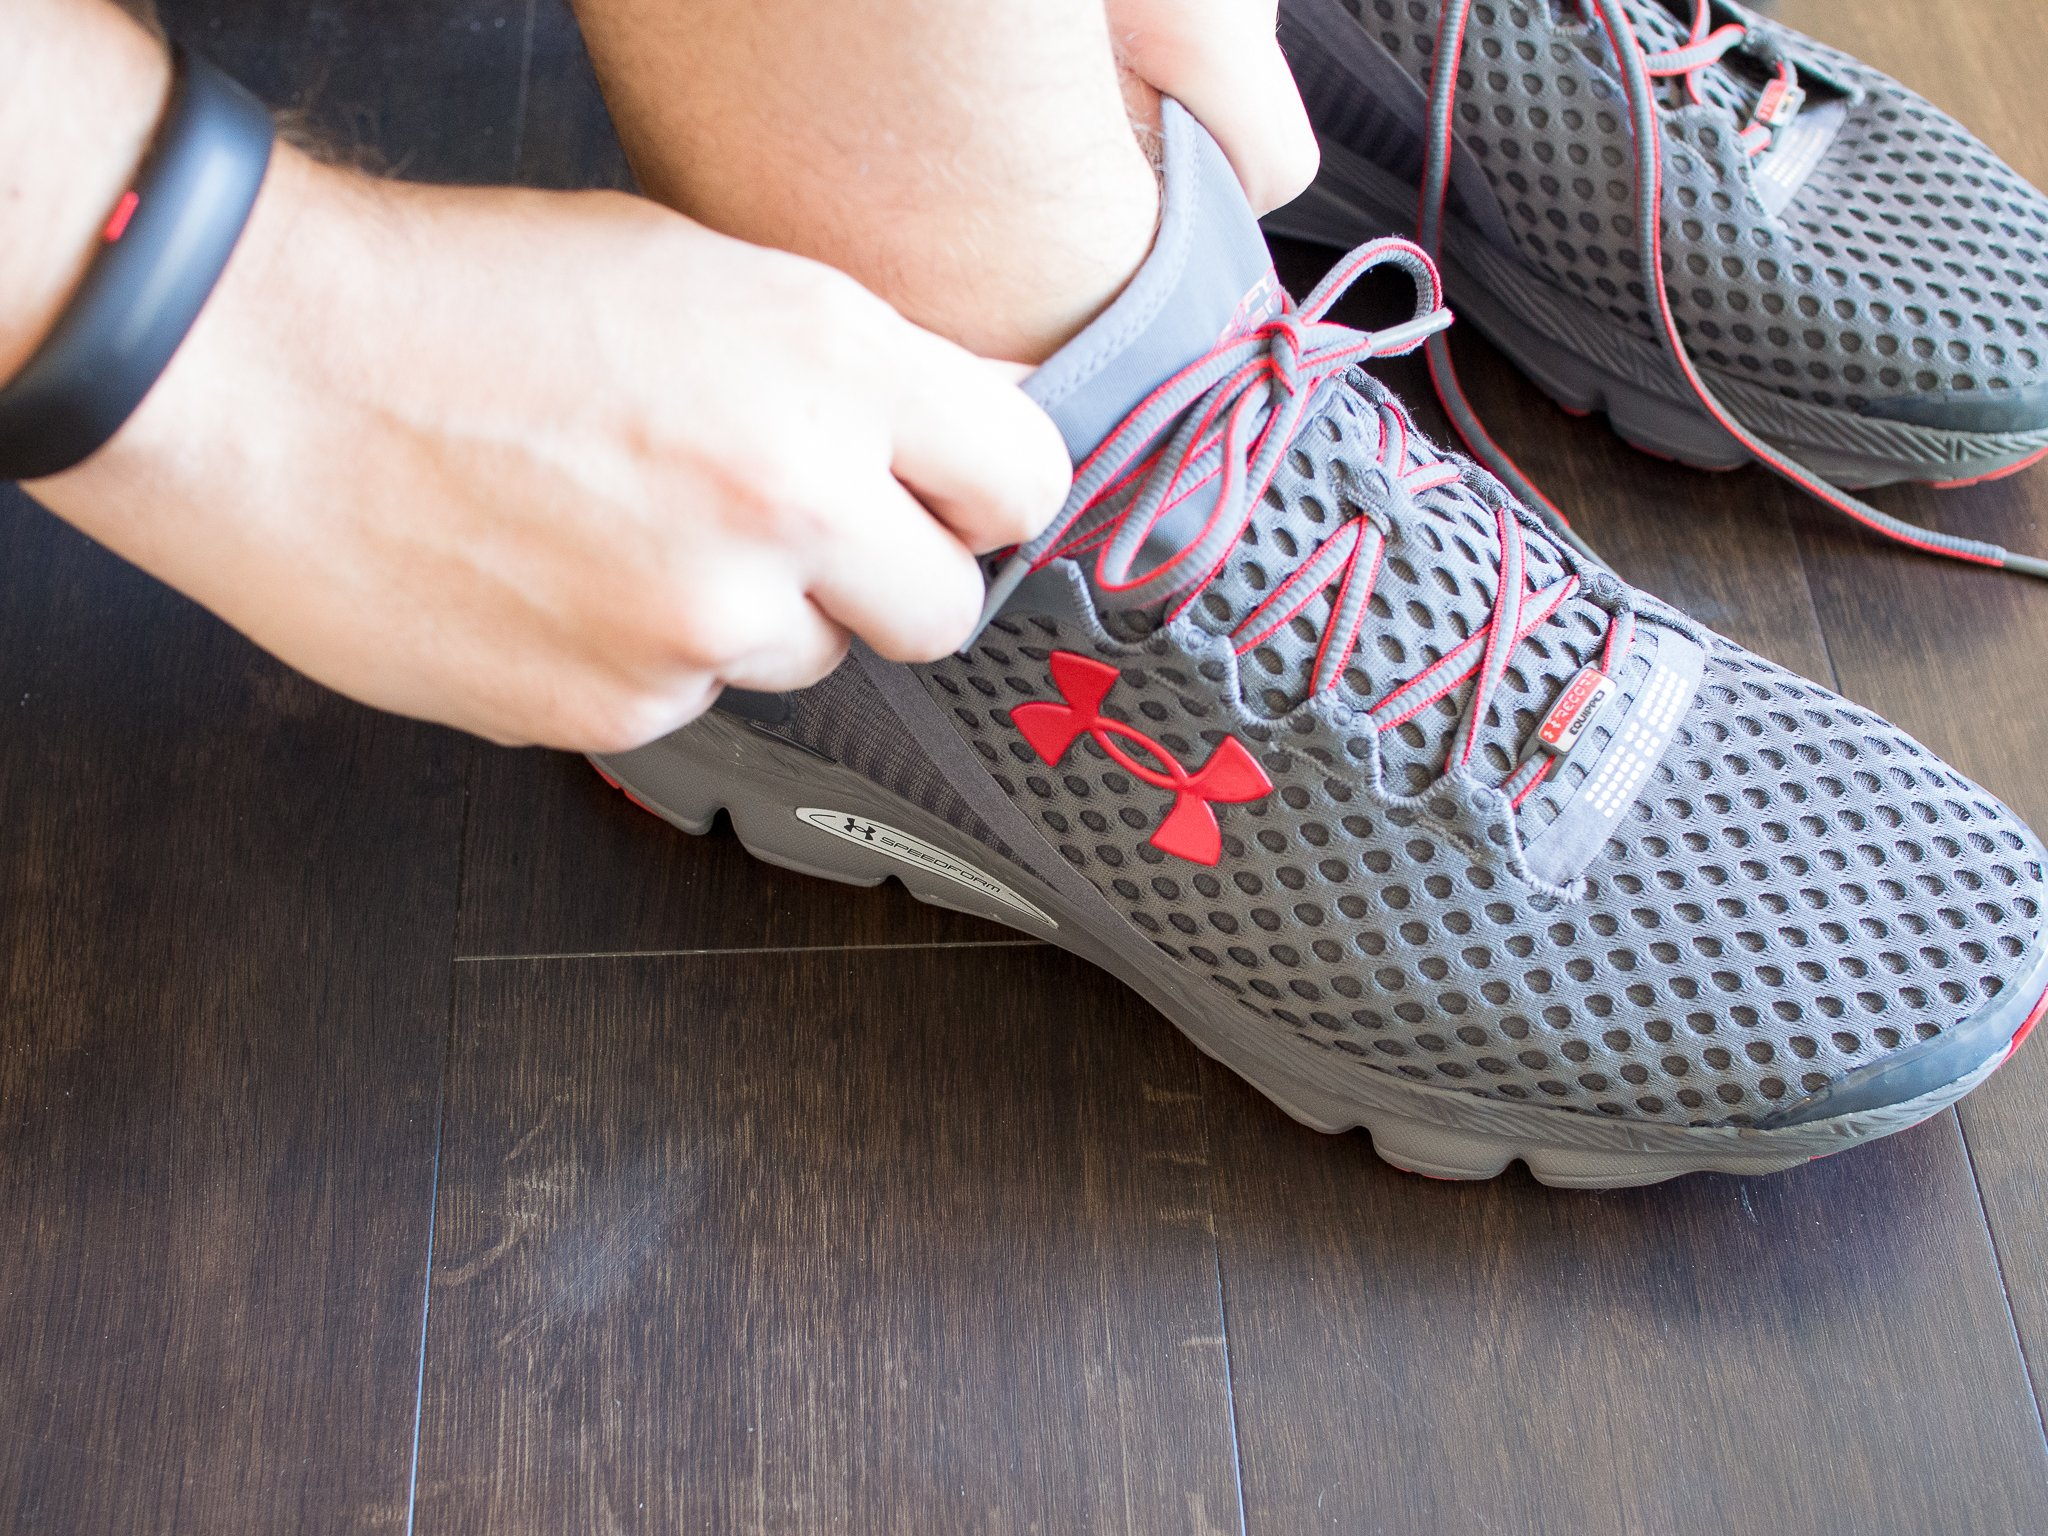 Gemini 2 Review Under Armour Speedform Gemini 2 Re Connected Running Shoes